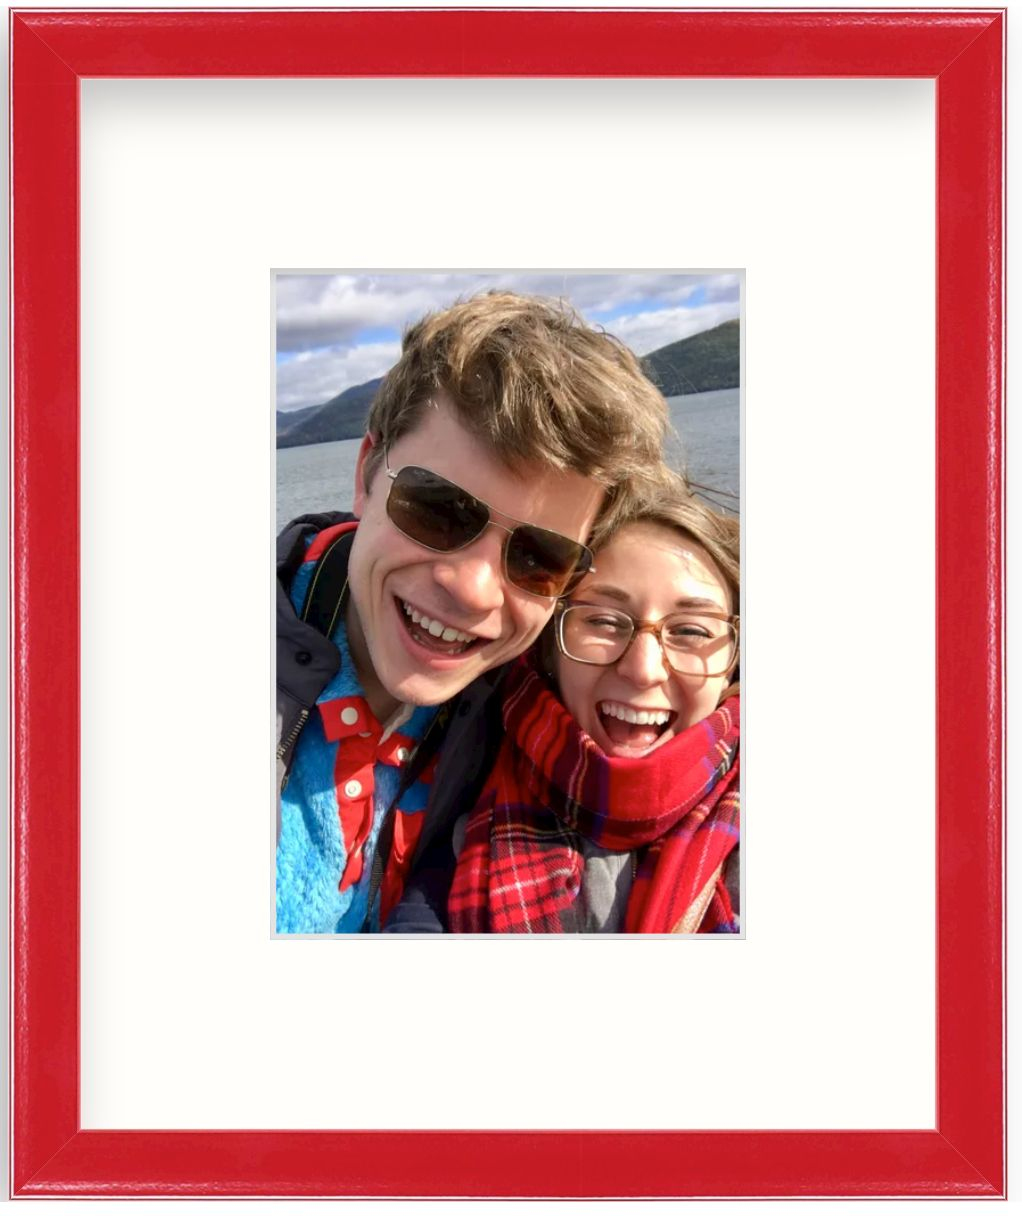 selfie photo of couple in red frame